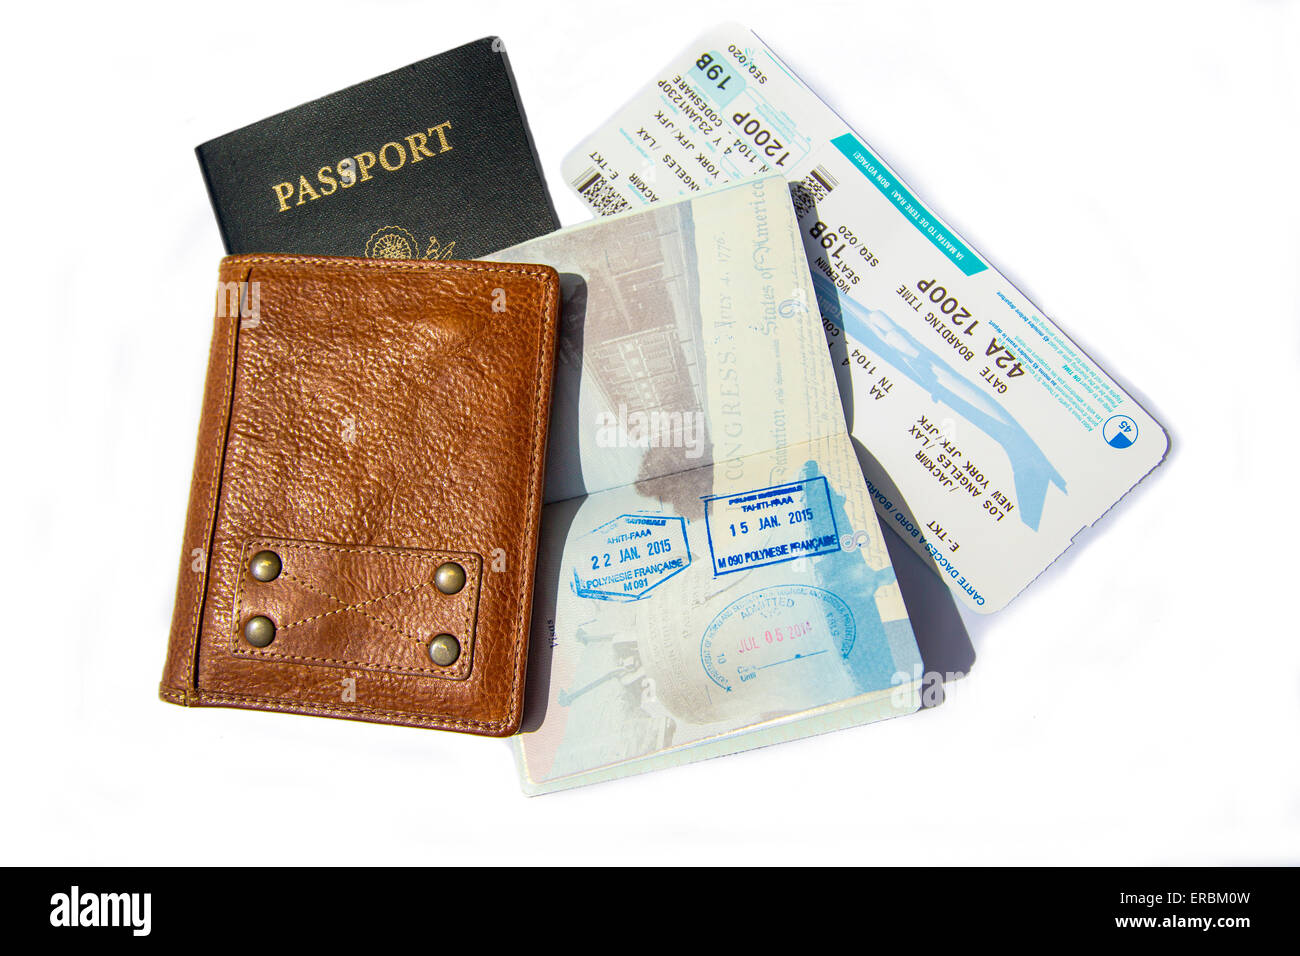 Travel documents. Stamped passport, passport holder and boarding pass - Stock Image